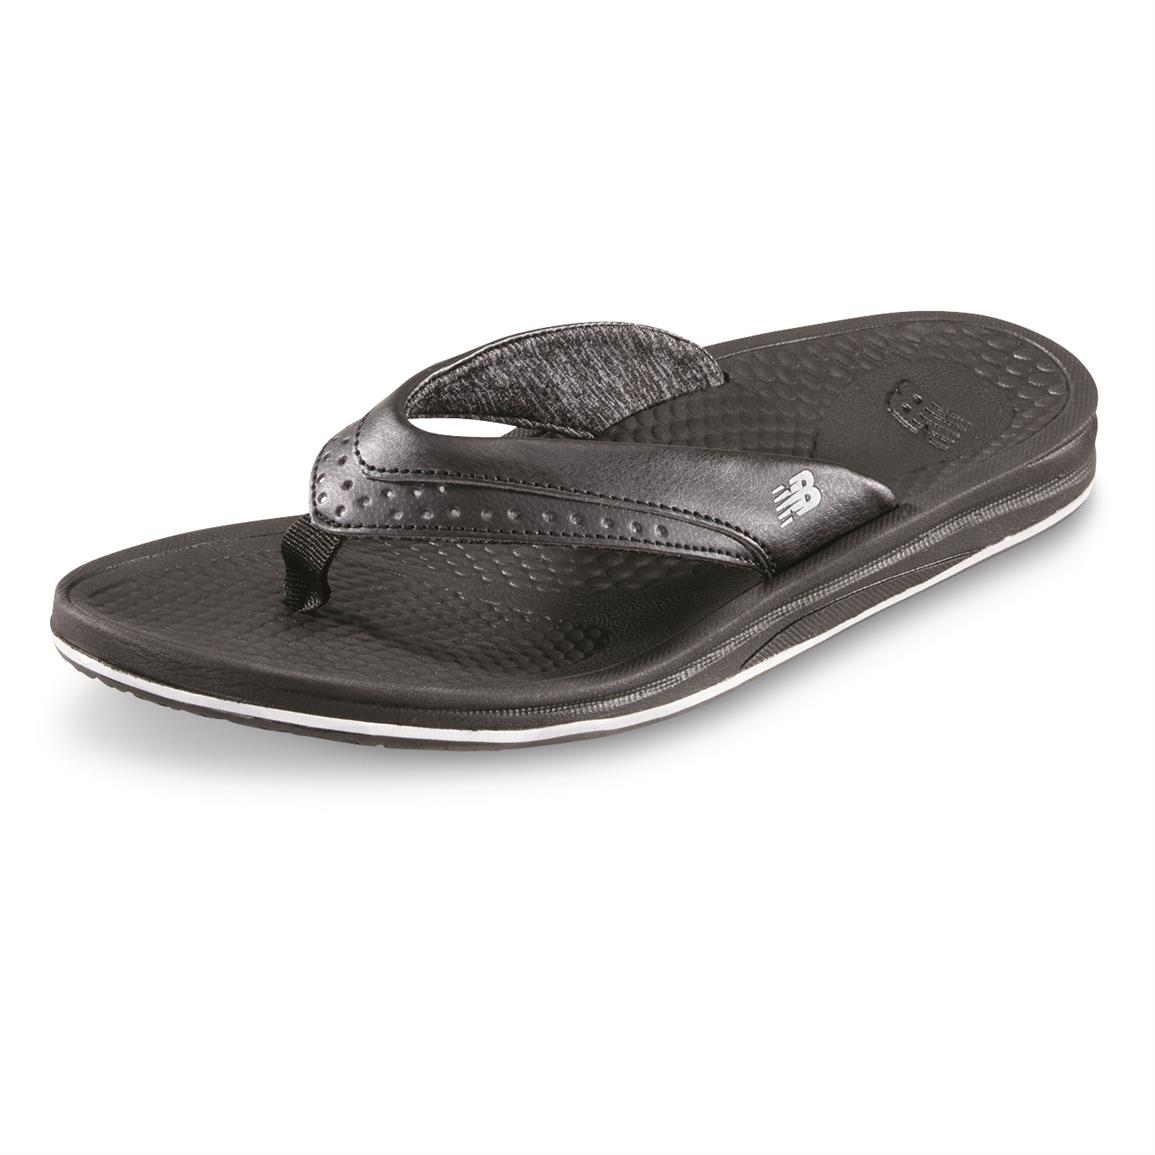 New Balance Women's Renew Thong Sandals, Black